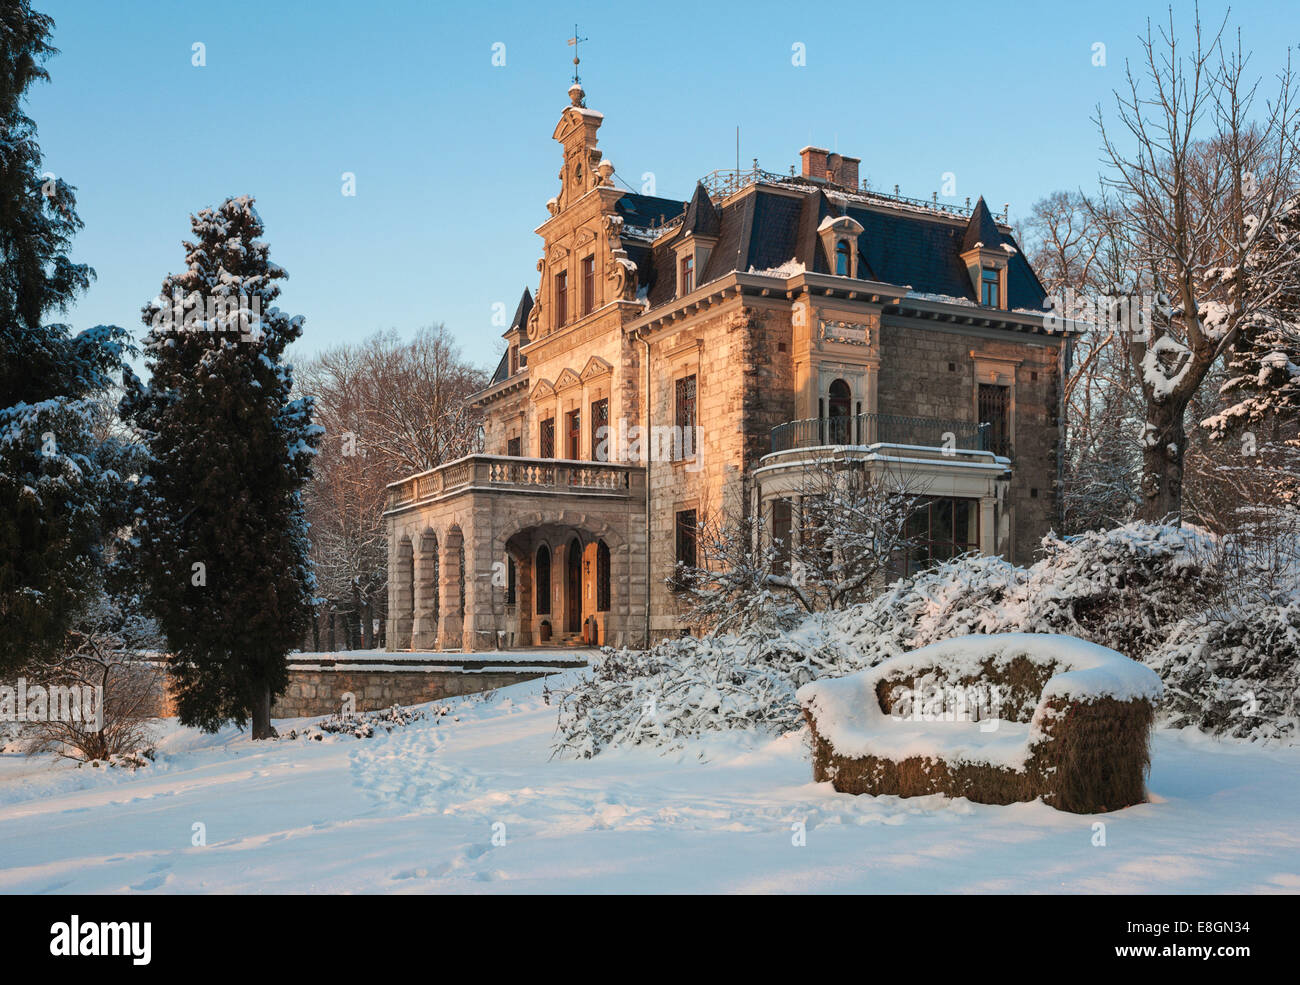 Villa Haar with park in the snow, building in the neo-Renaissance style, 1885, now a meeting and conference venue - Stock Image